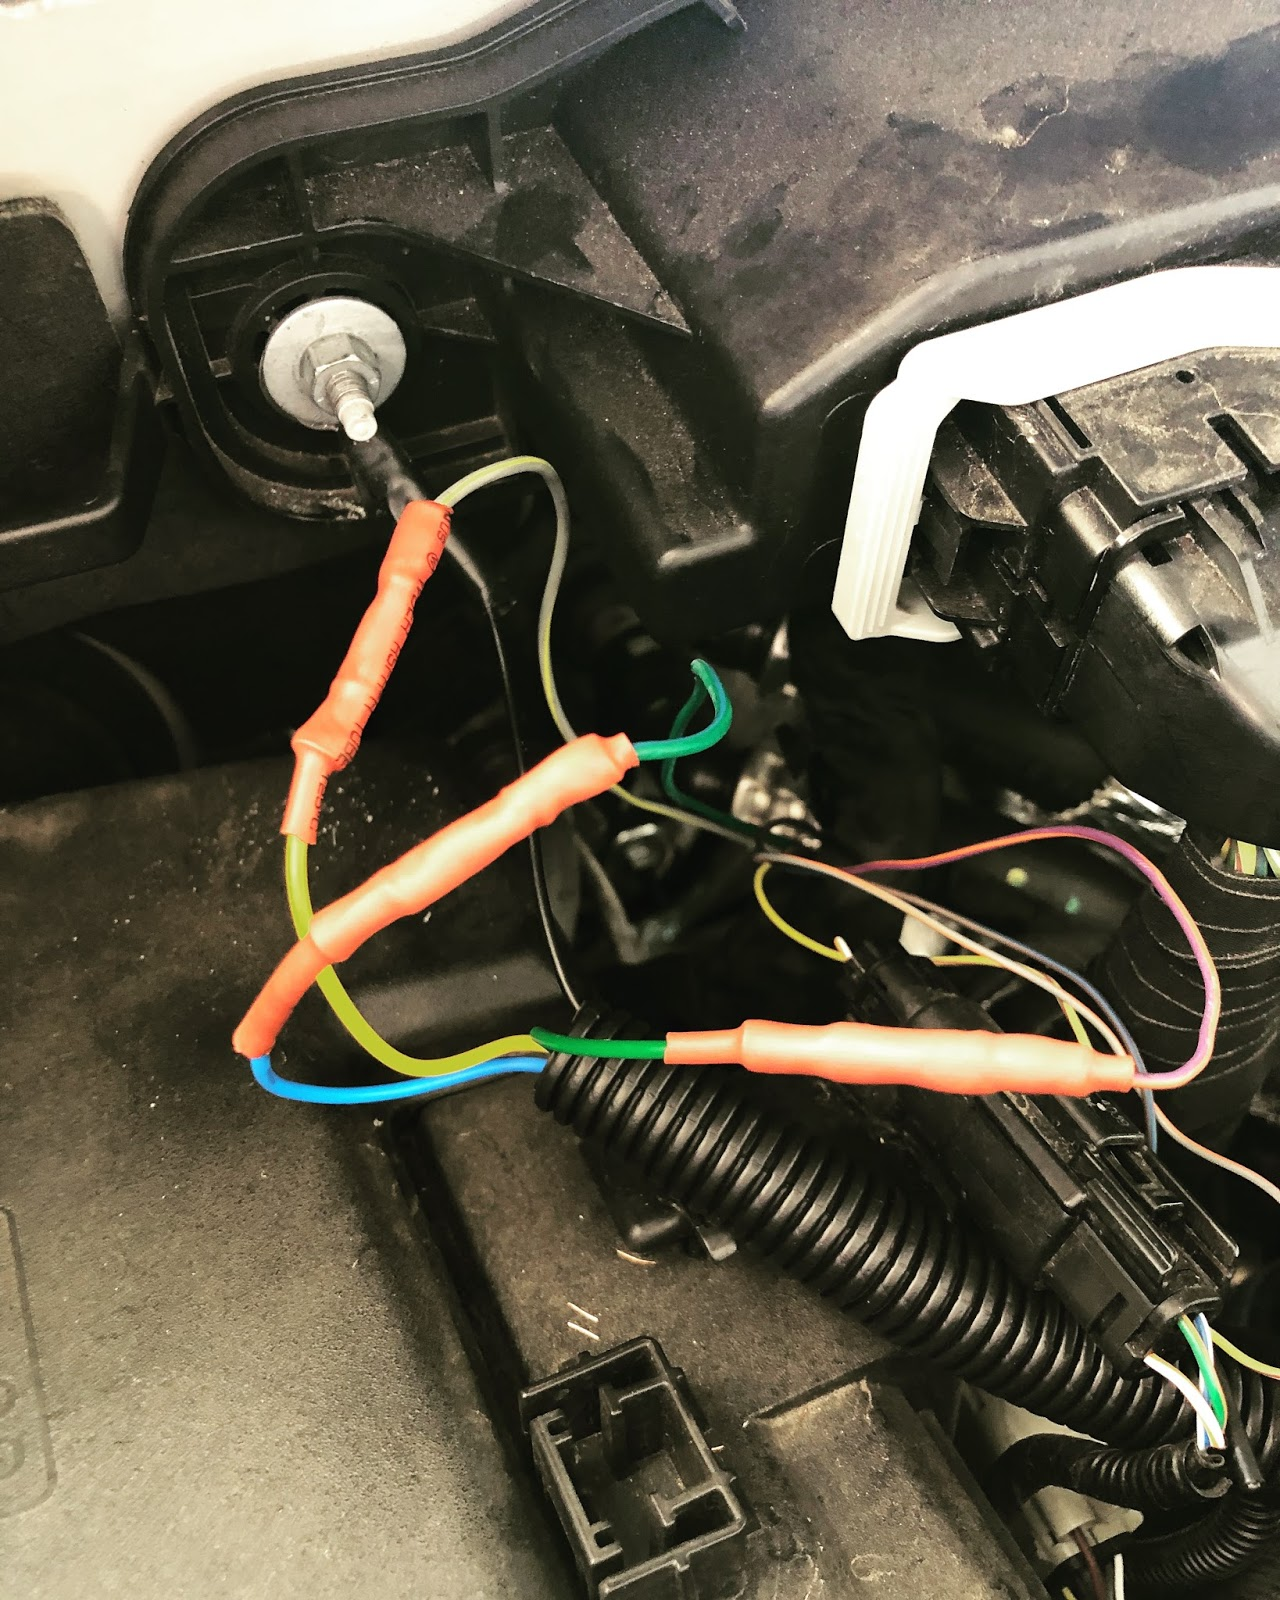 2017 Ford Raptor Installation Of The Lights Kit You Upfitter Wiring Under Hood Here Are Aux1 3 Wires Connected To Wire Loom I Used Some Heatshrink Butt Connectors And Added More Tubing Over Those Ensure